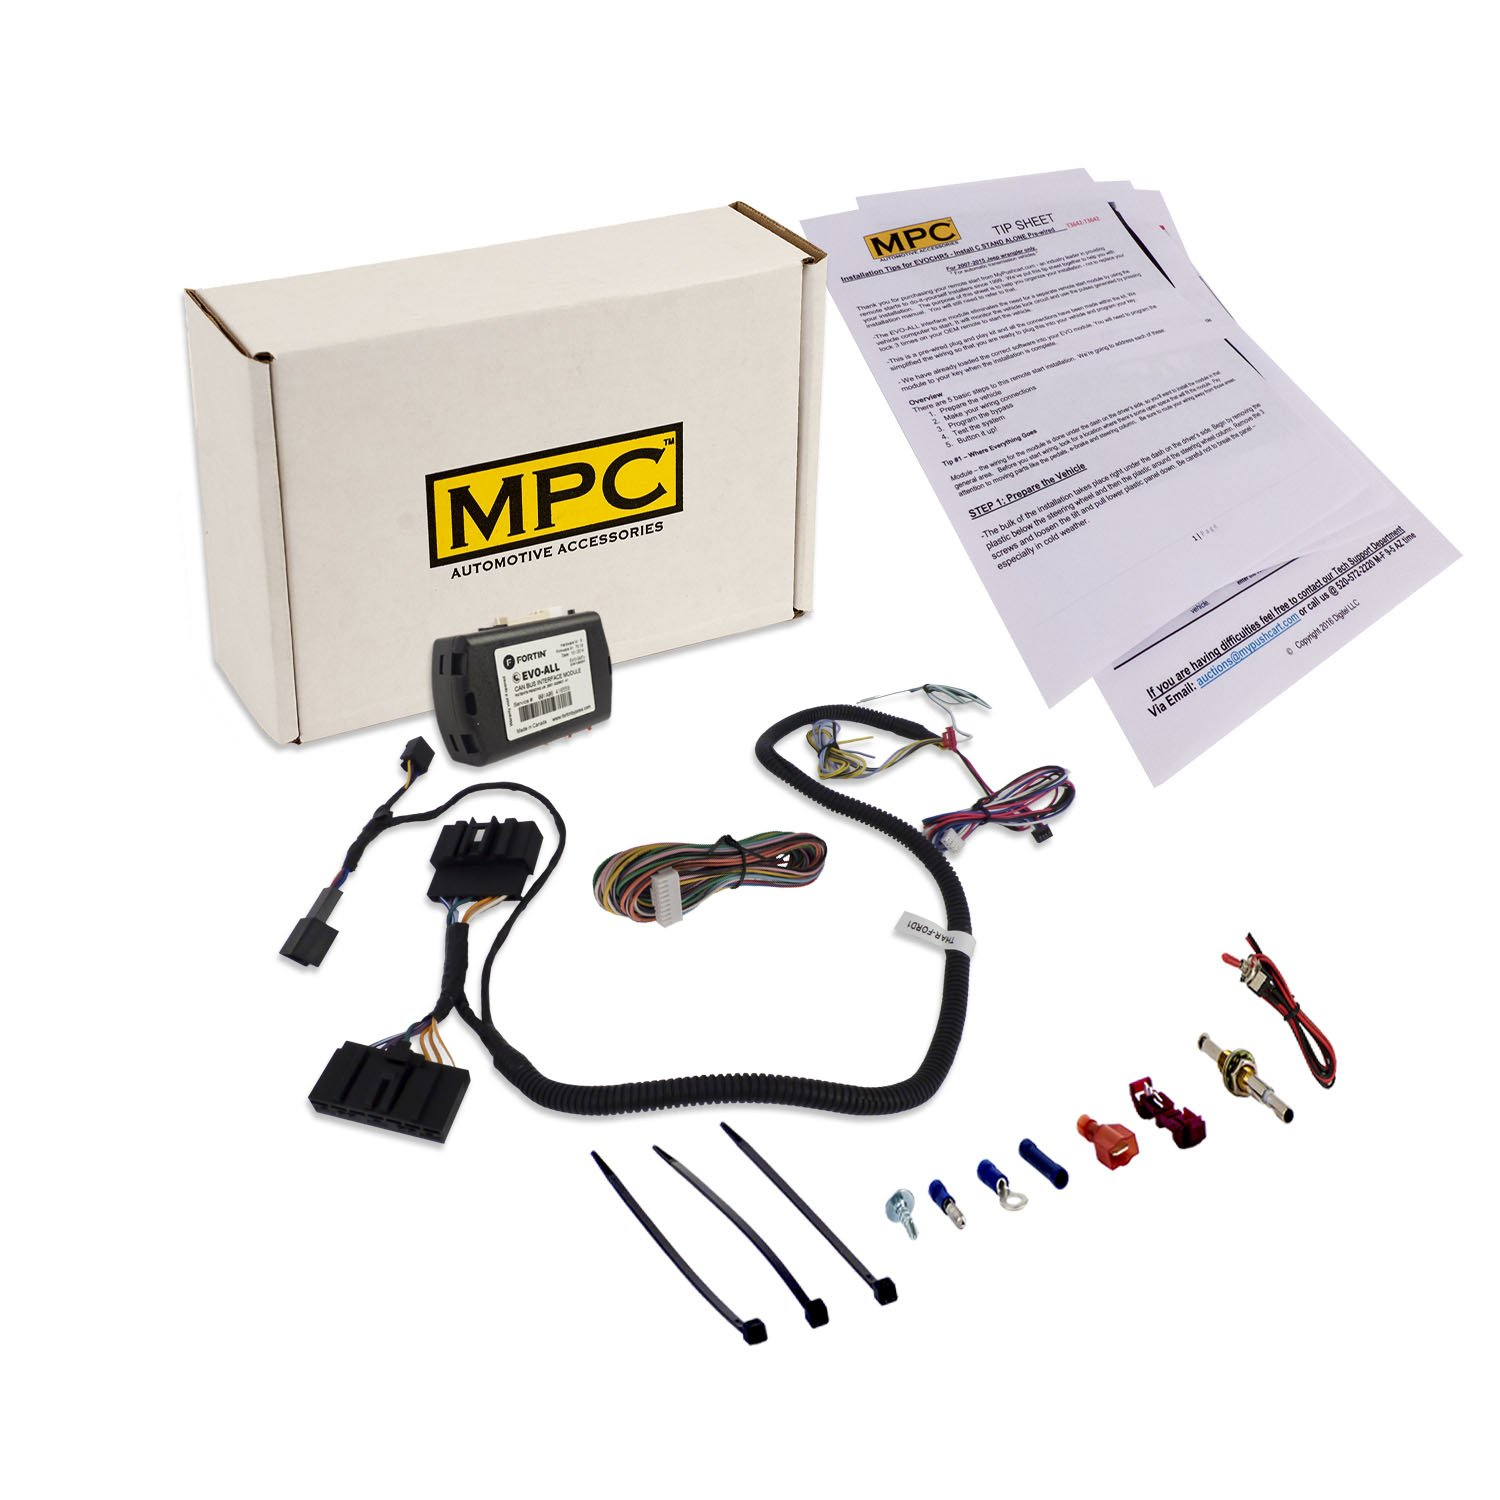 Mpc 2380 Factory Fob Activated Remote Start Kit For 2012 Ford Edge Wiring Diagram Select Lincoln Vehicles 2011 2016 Includes A T Harness To Simplify Installation